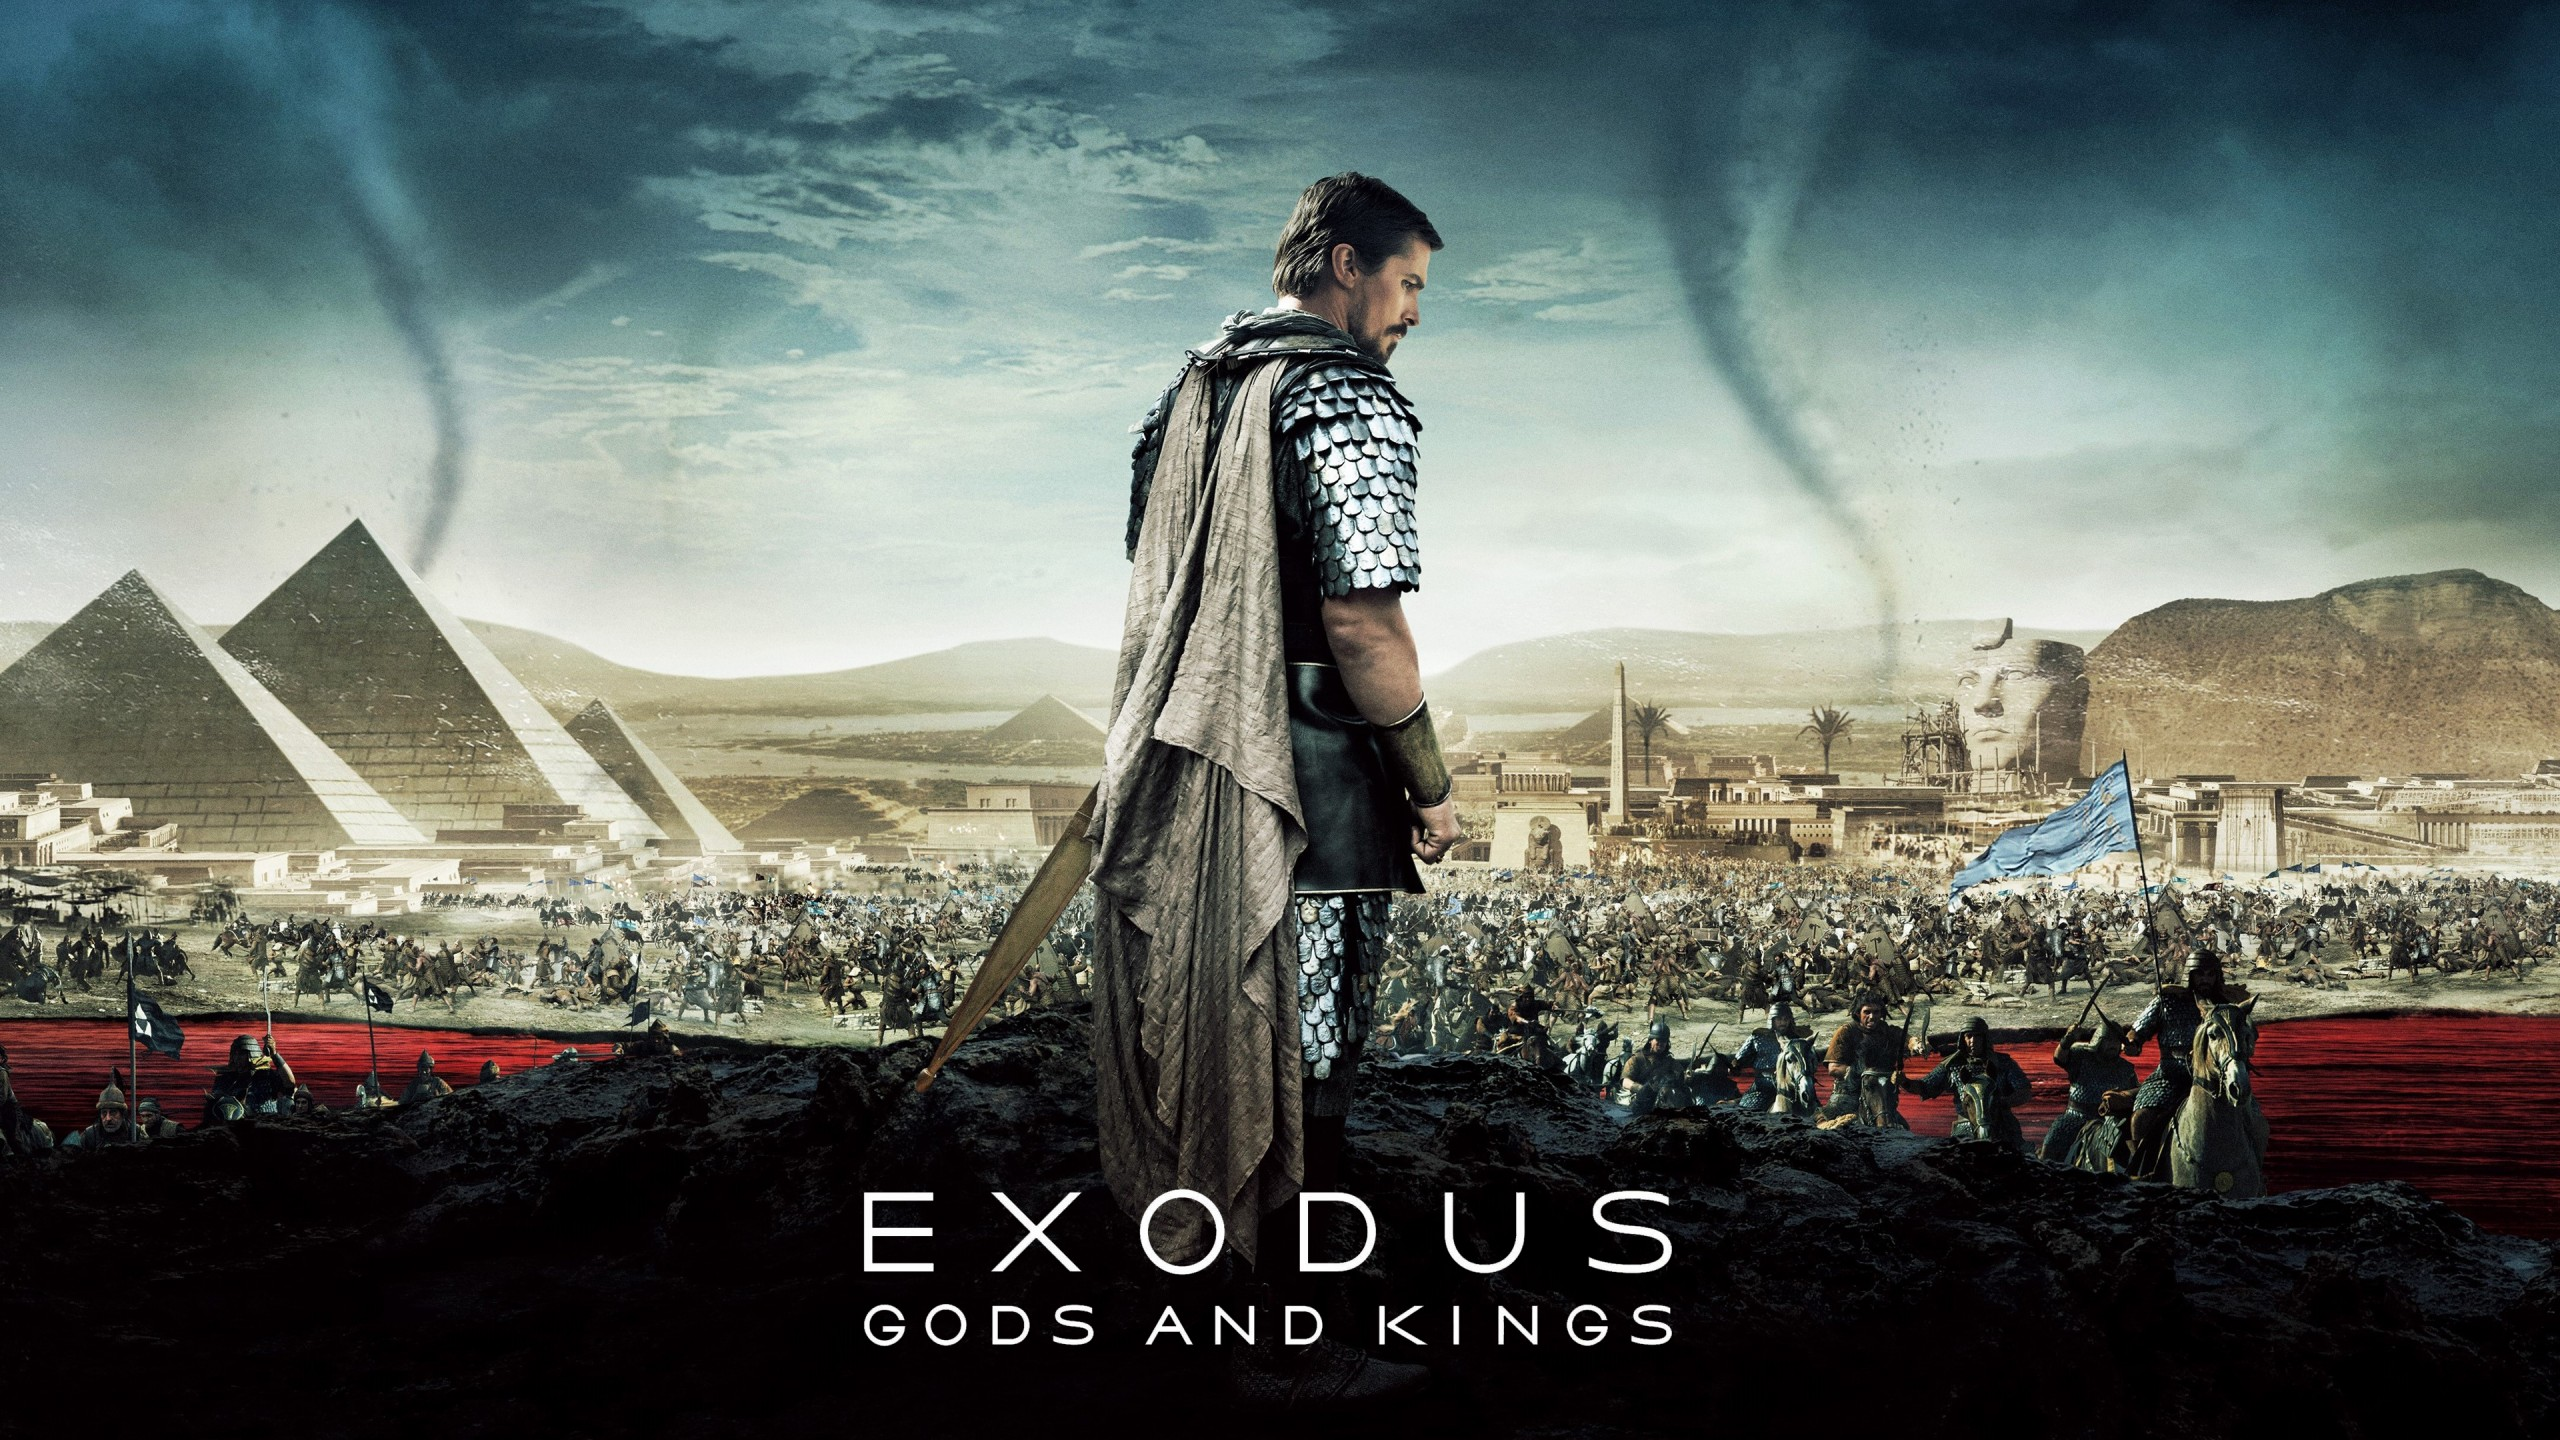 Cars Wallpapers 2014 Hd Download Exodus Gods And Kings Movie Wallpapers Hd Wallpapers